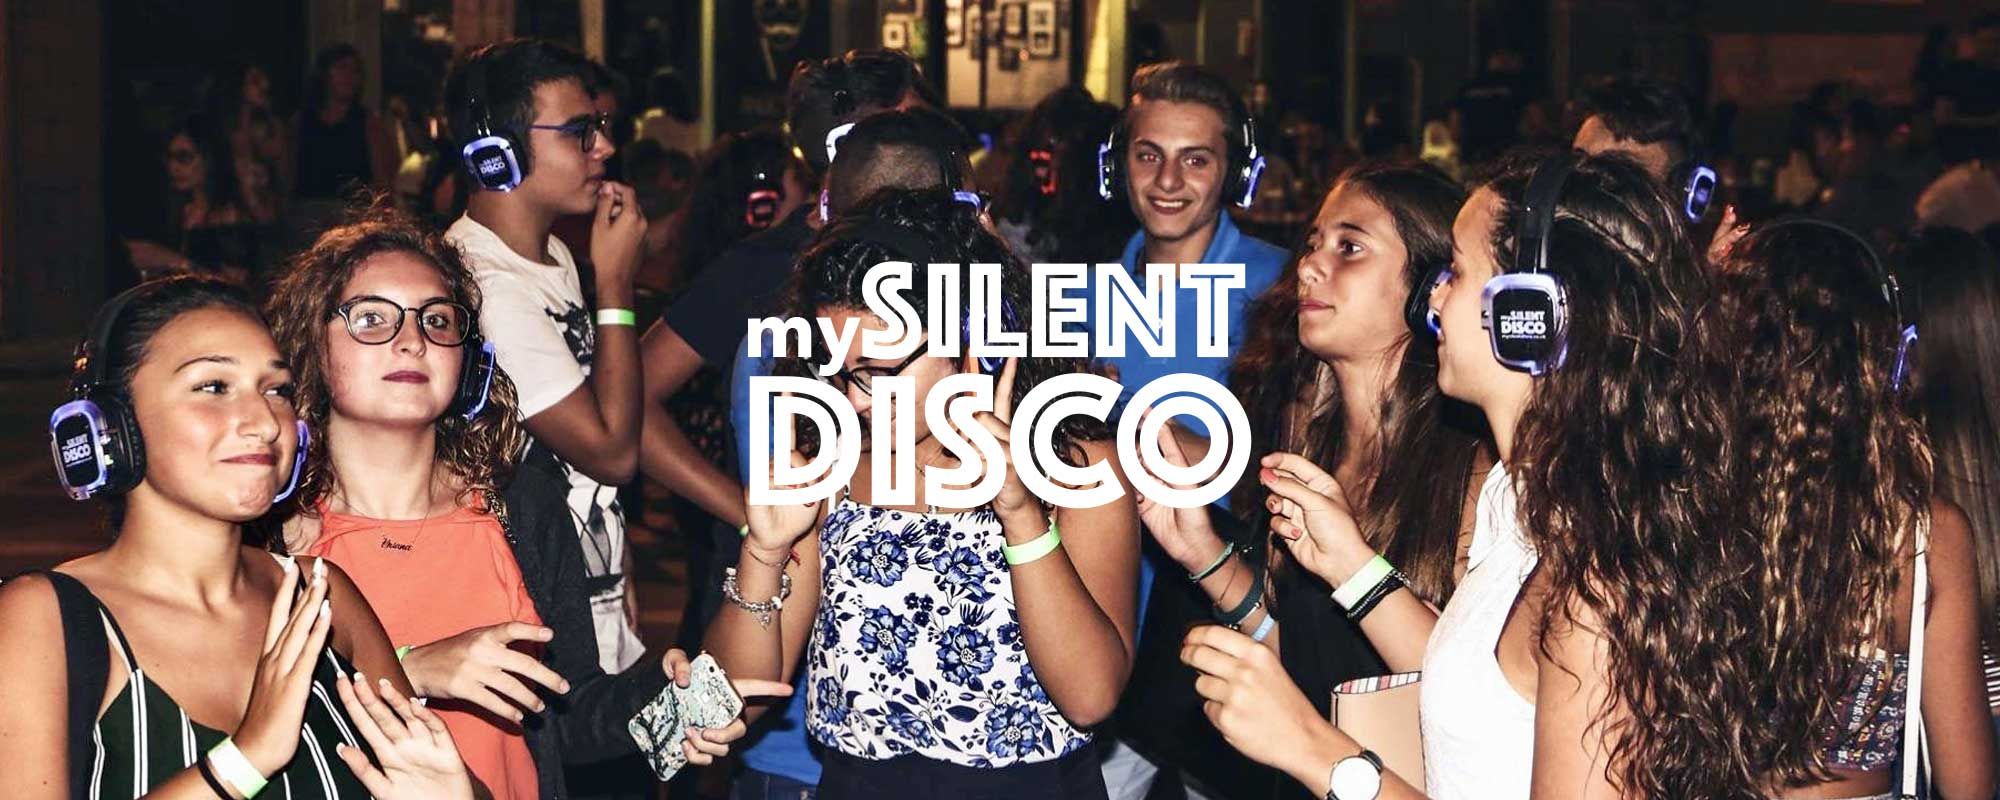 Outdoor silent disco in Italy